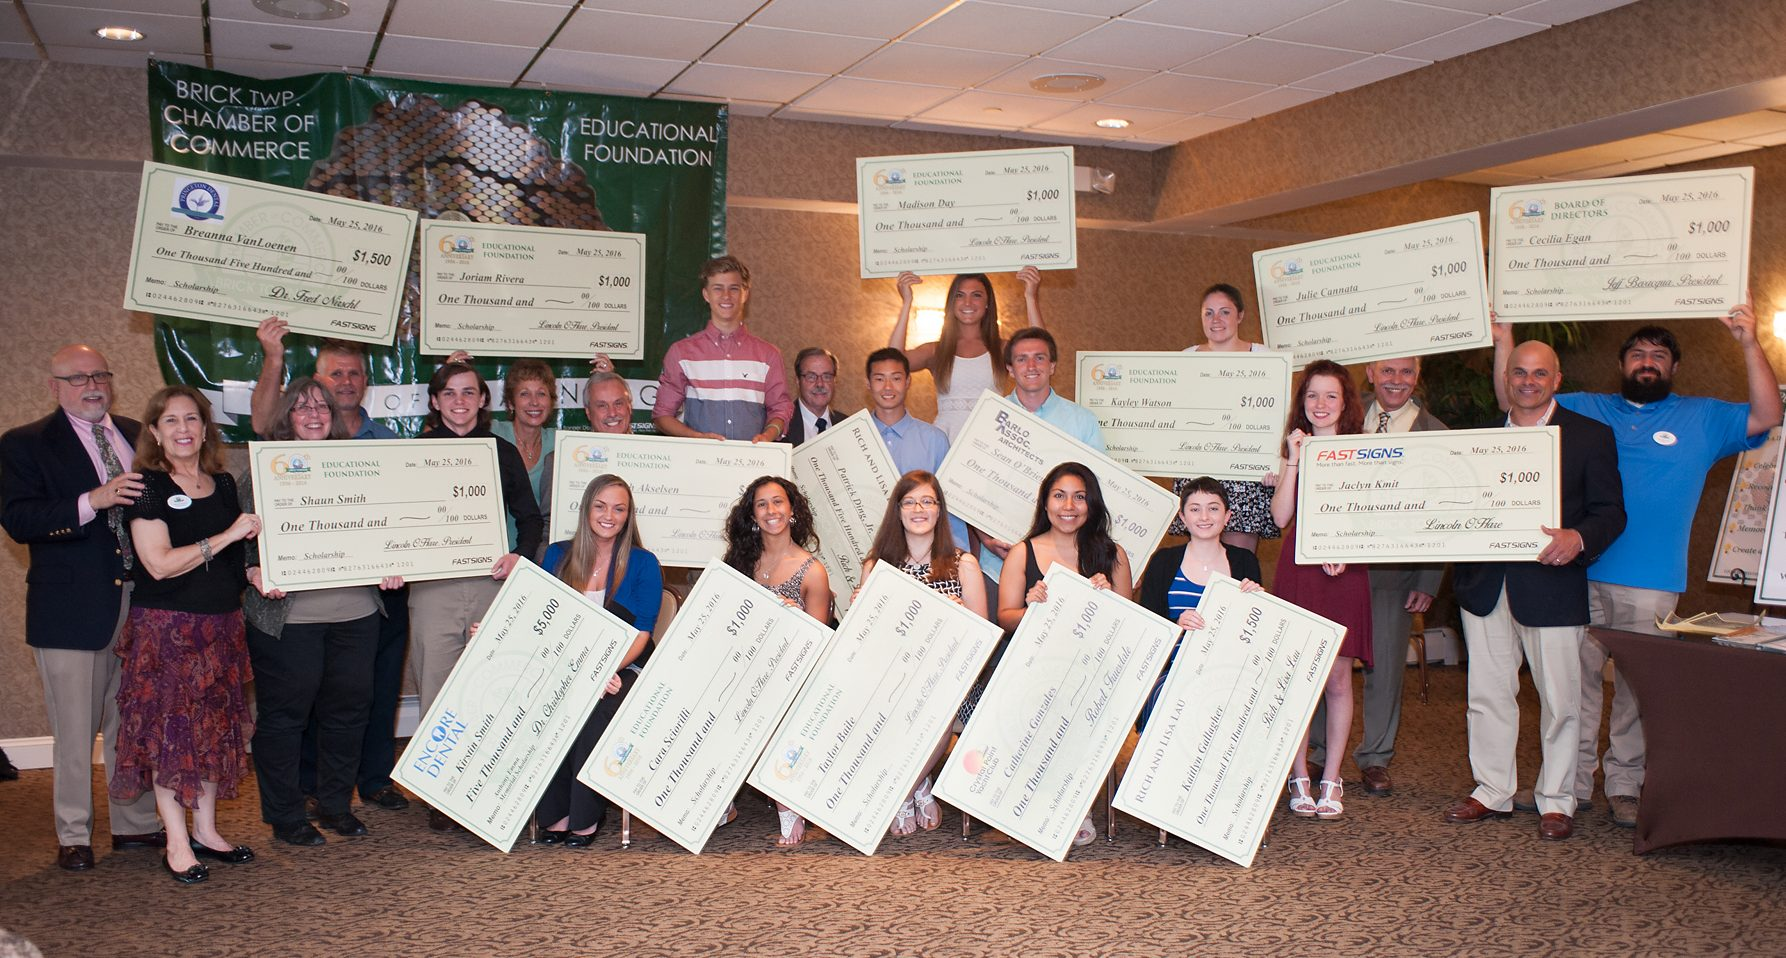 Oversized checks, donated by FASTSIGNS of Brick and representing $23,000 in awards to local scholars. (Photo: Brick Township Chamber of Commerce)